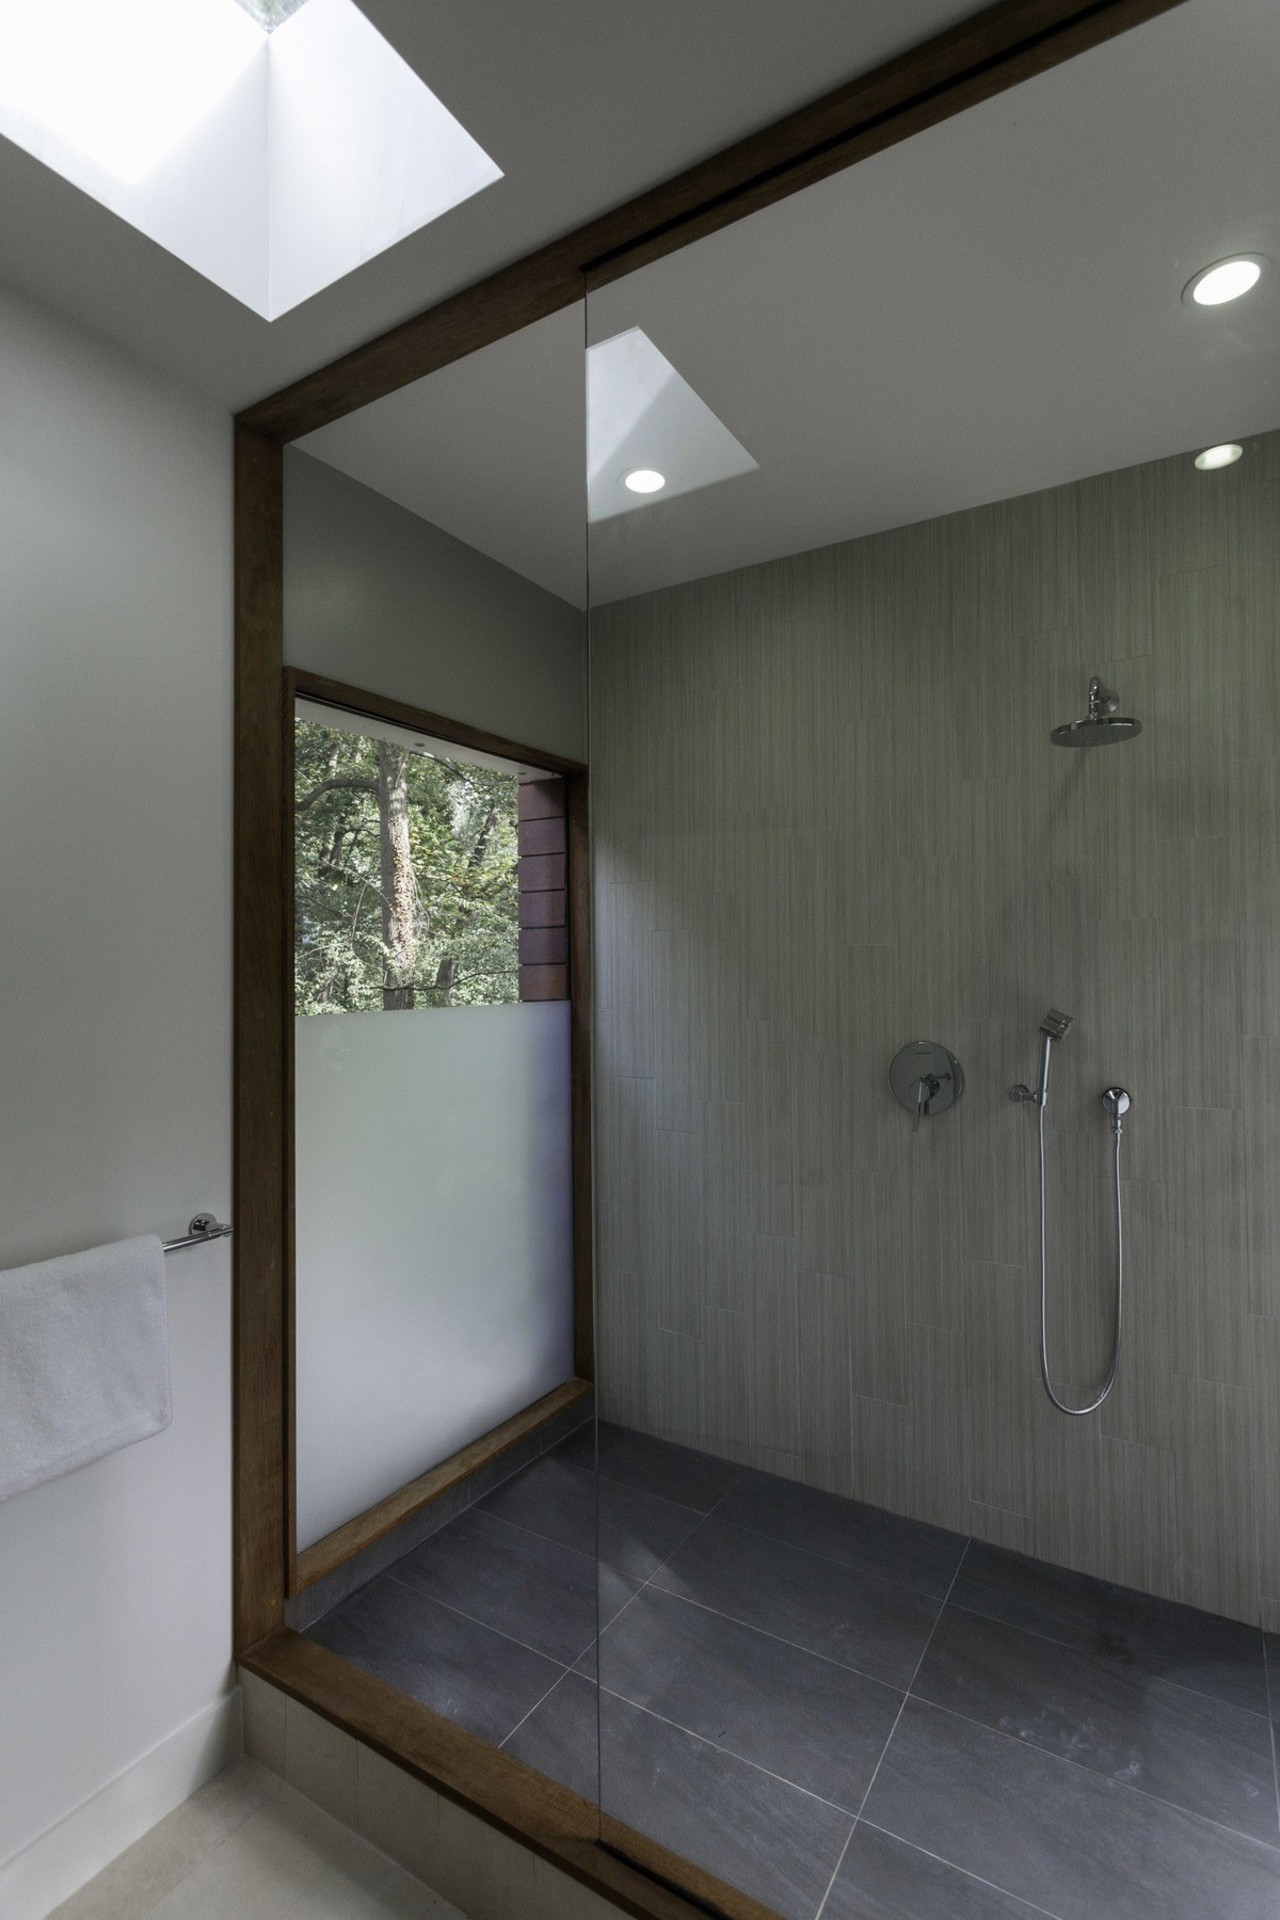 A large shower has views out to the architecture, bathroom, ceiling, daylighting, floor, home, house, interior design, gray, black